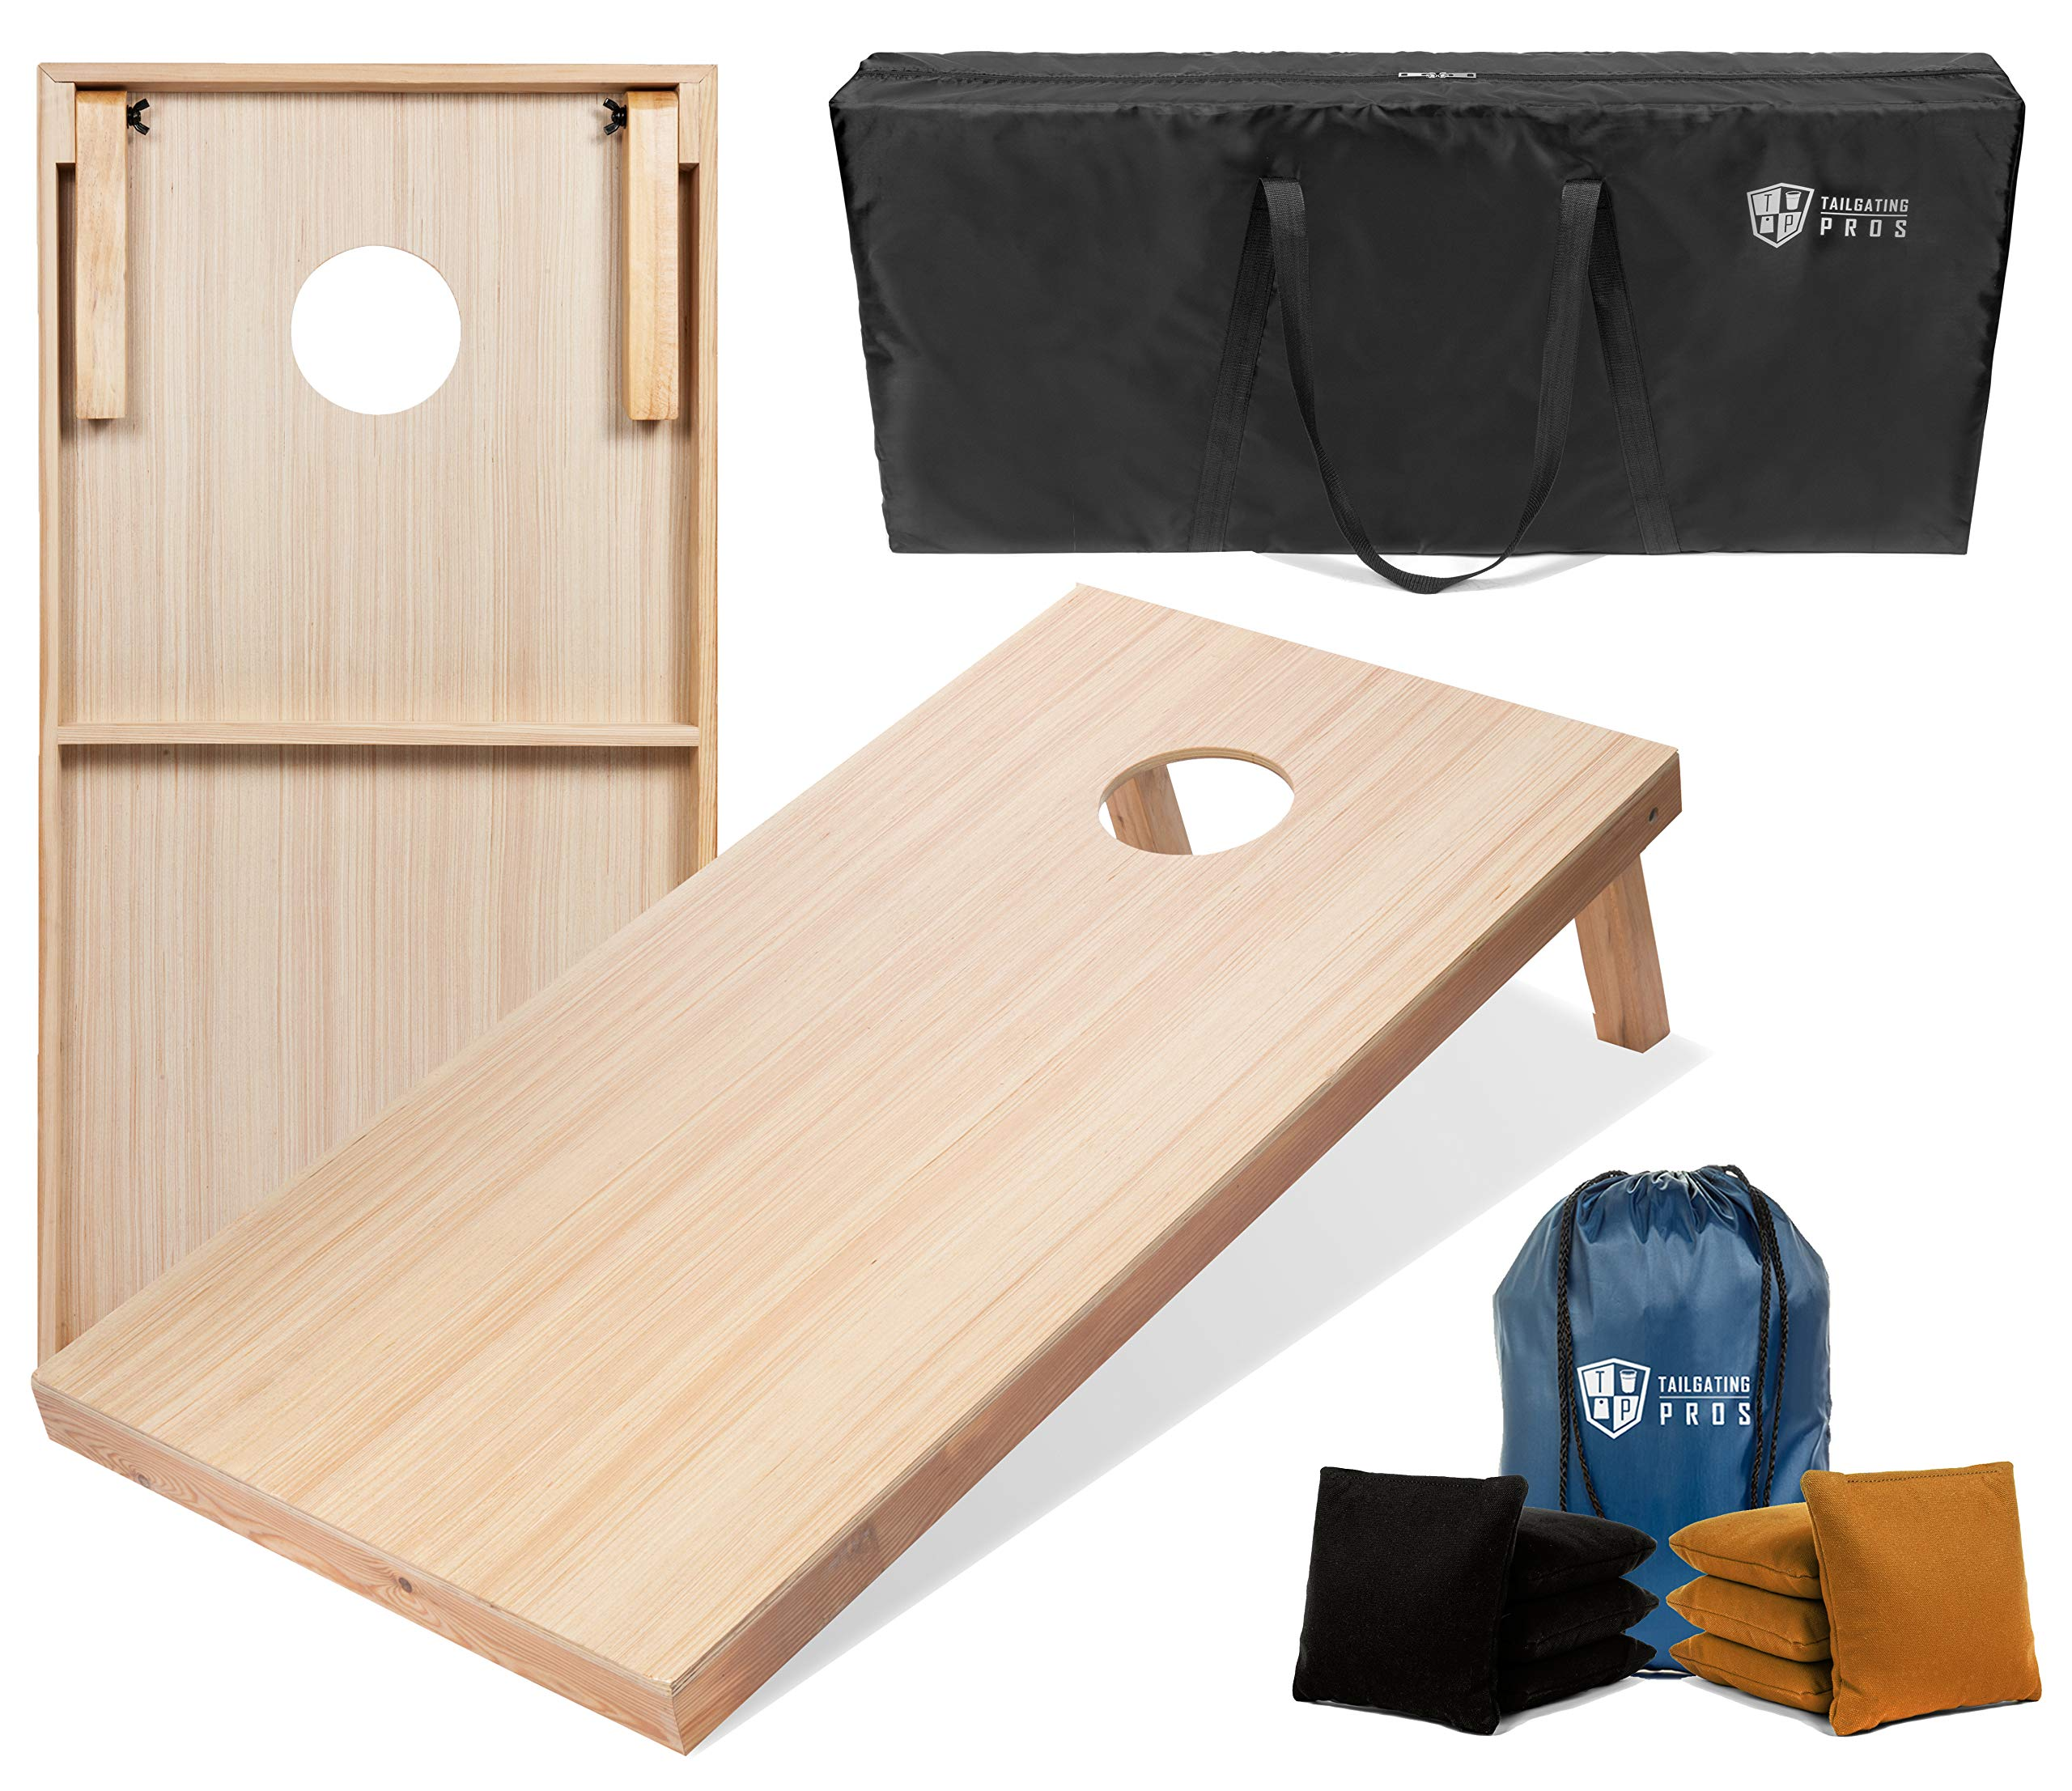 Tailgating Pros 4'x2' & 3'x2' Premium Woodgrain Cornhole Game w/Carrying Case & Set of 8 Corn Hole Bags - 150+ Color Combos! Optional LED Lights by Tailgating Pros